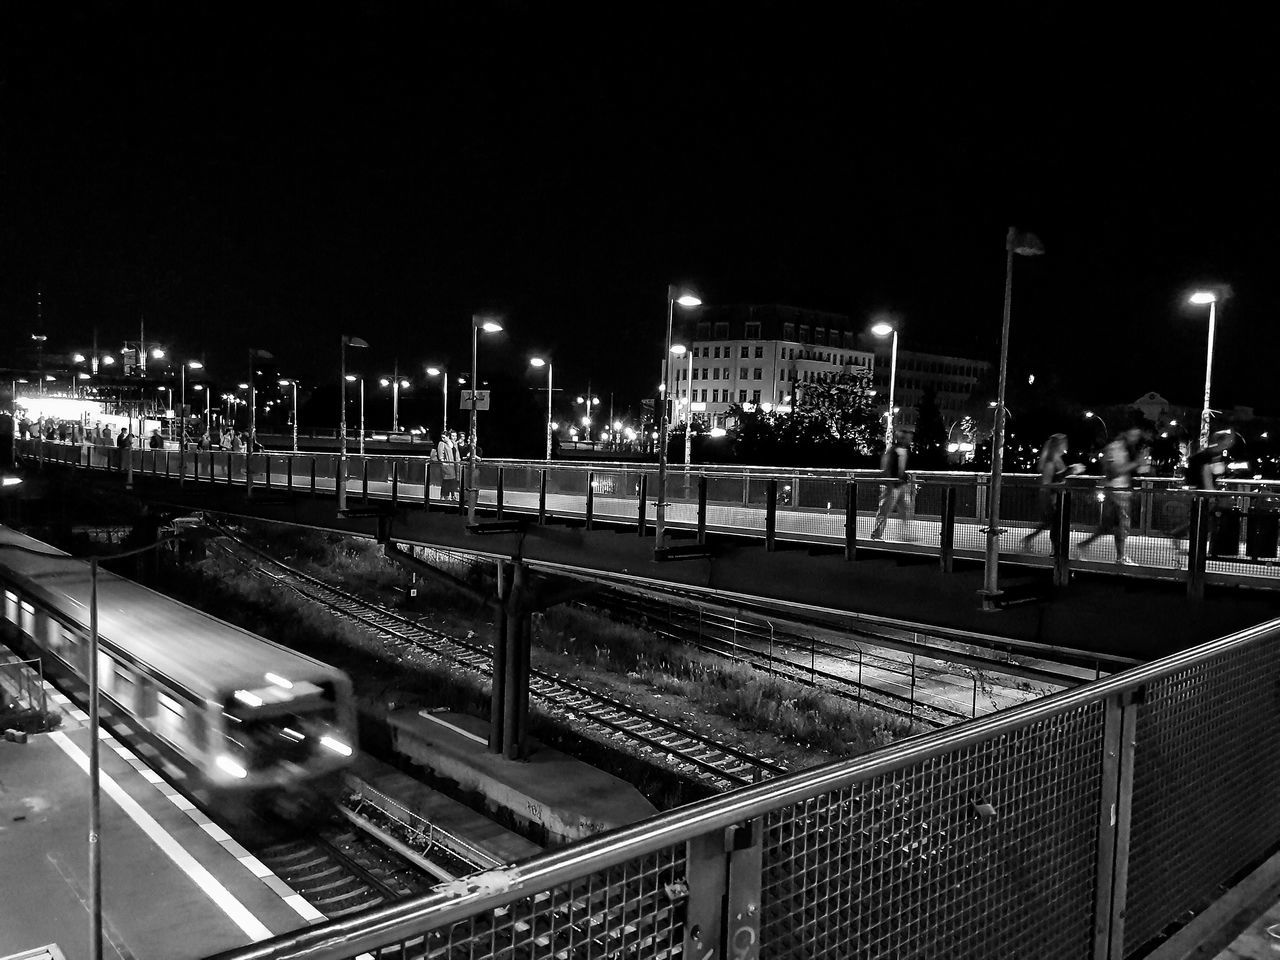 Last train home after a long night out in Berlin Black & White City Life Journey Night Rail Transportation Railroad Track Train Track Transportation Warschauerbrücke Capture Berlin